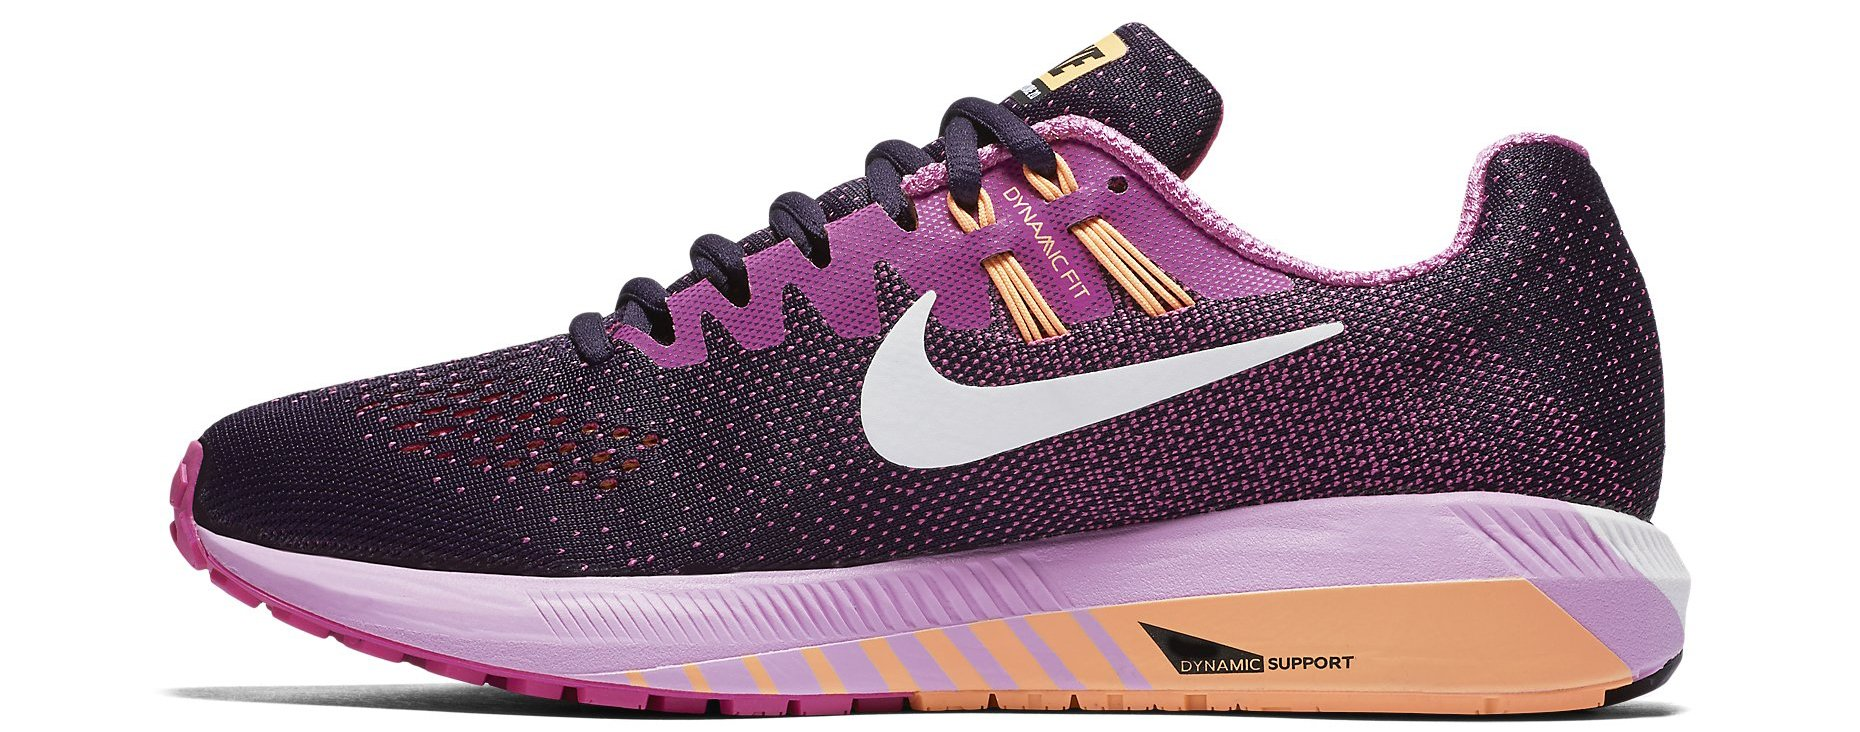 running shoes nike wmns air zoom structure 20. Black Bedroom Furniture Sets. Home Design Ideas